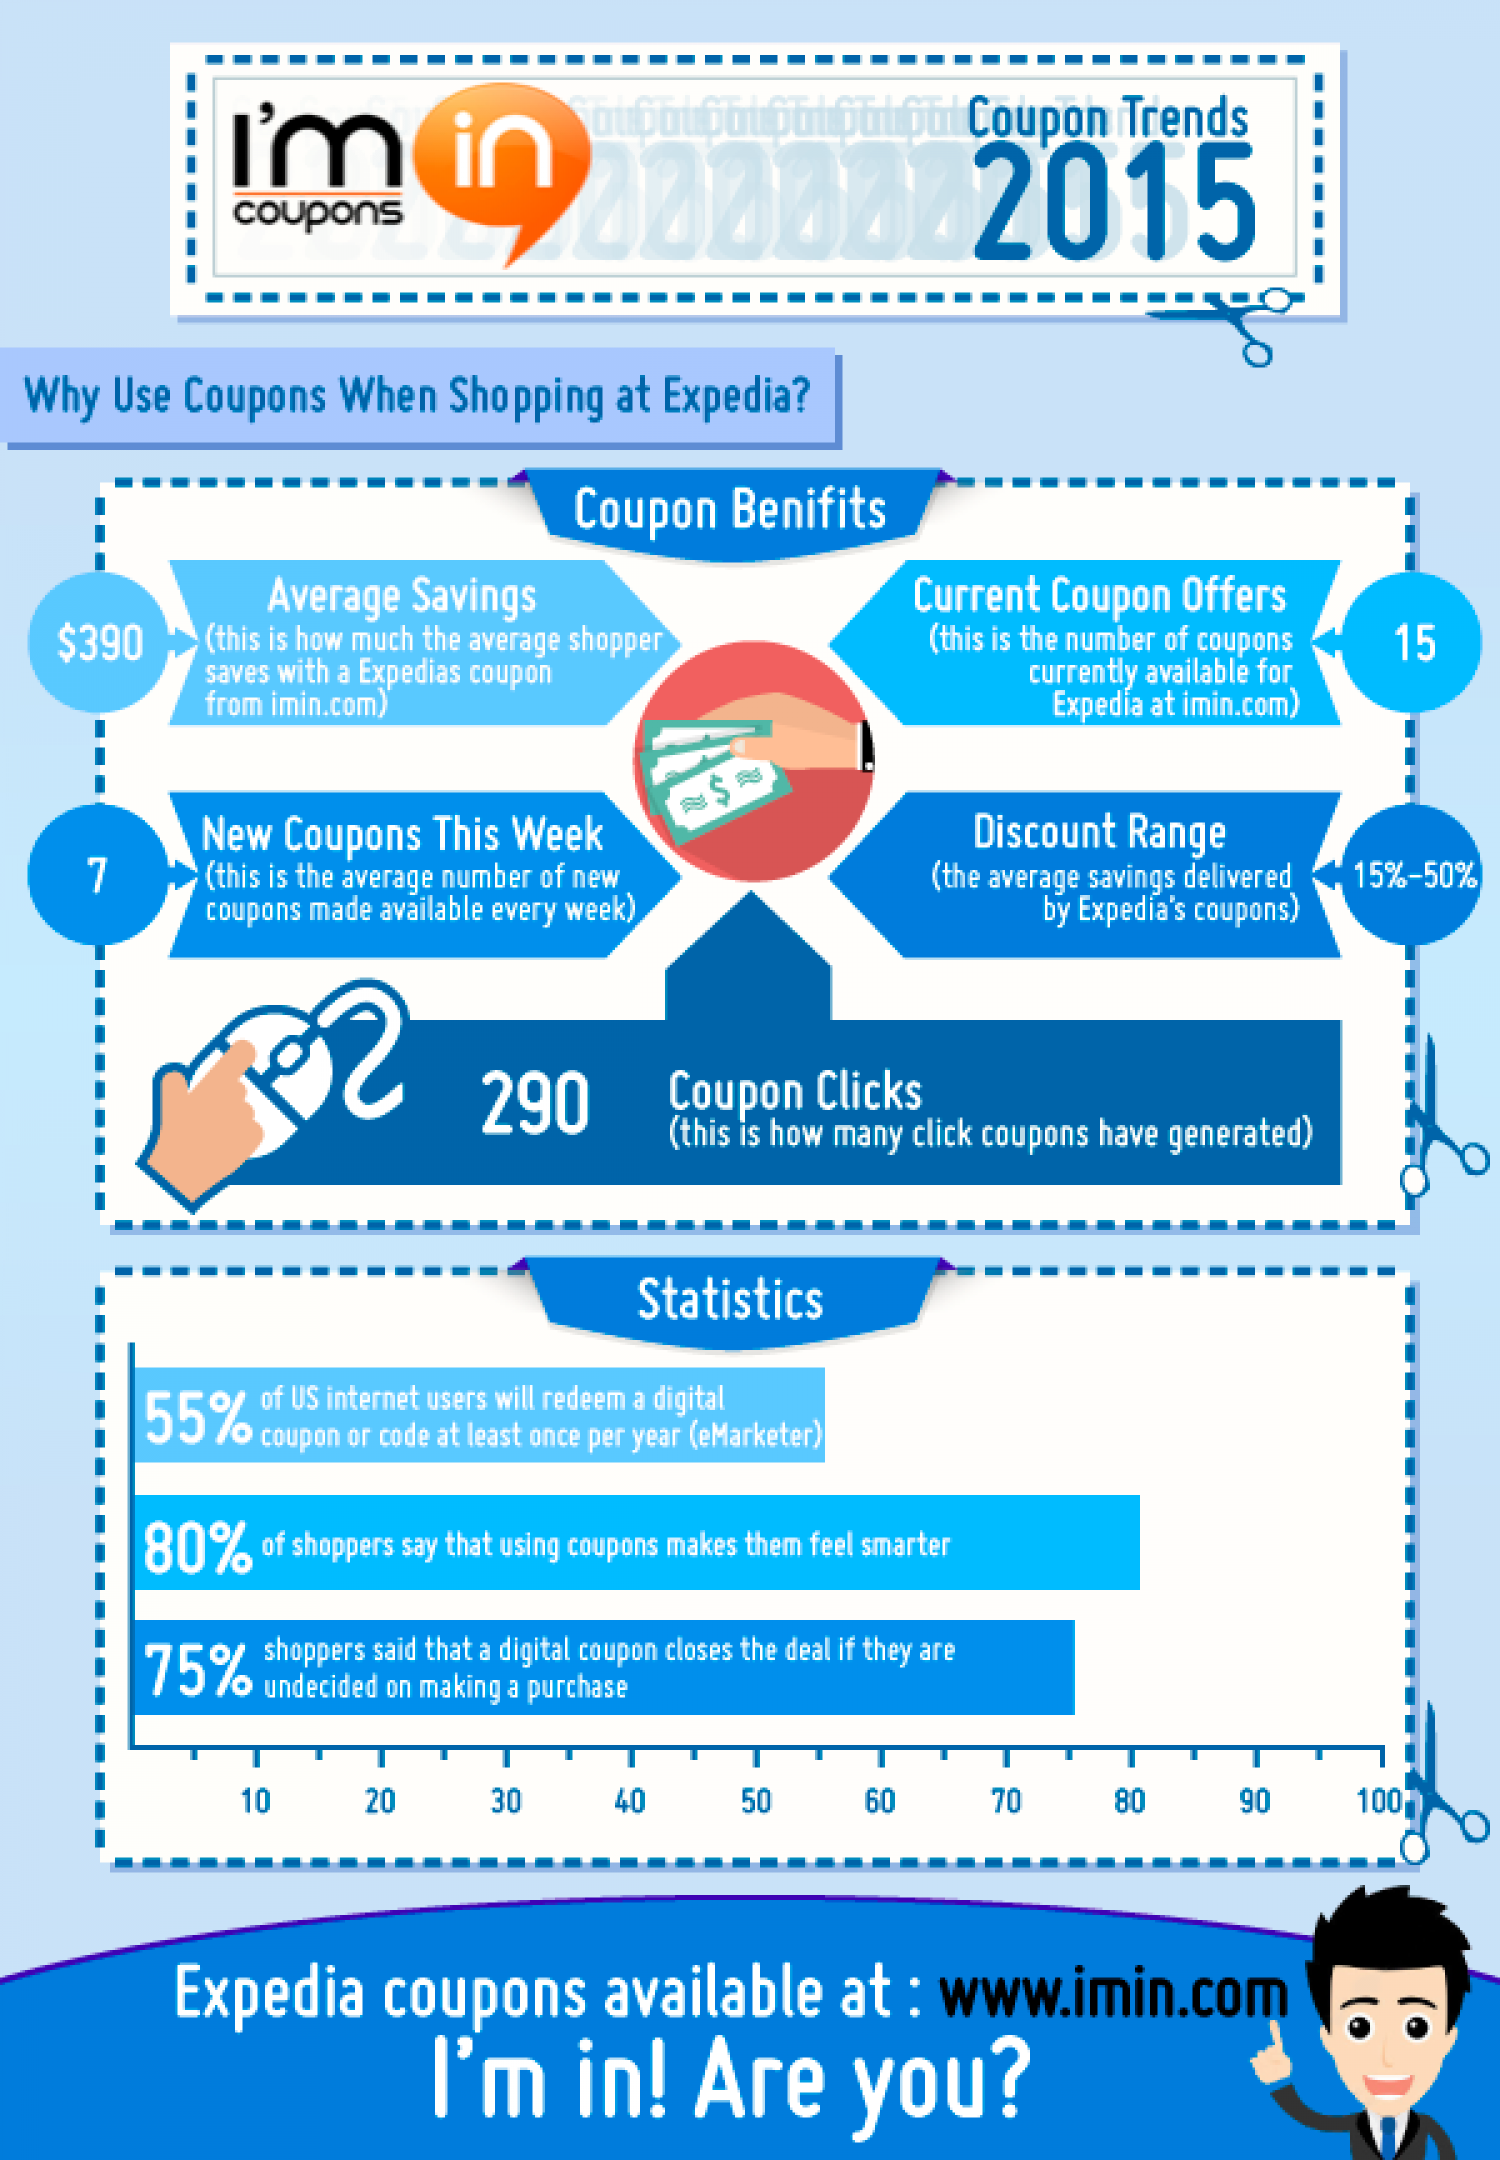 How Much Can You Save with Expedia Coupons in 2015 Infographic